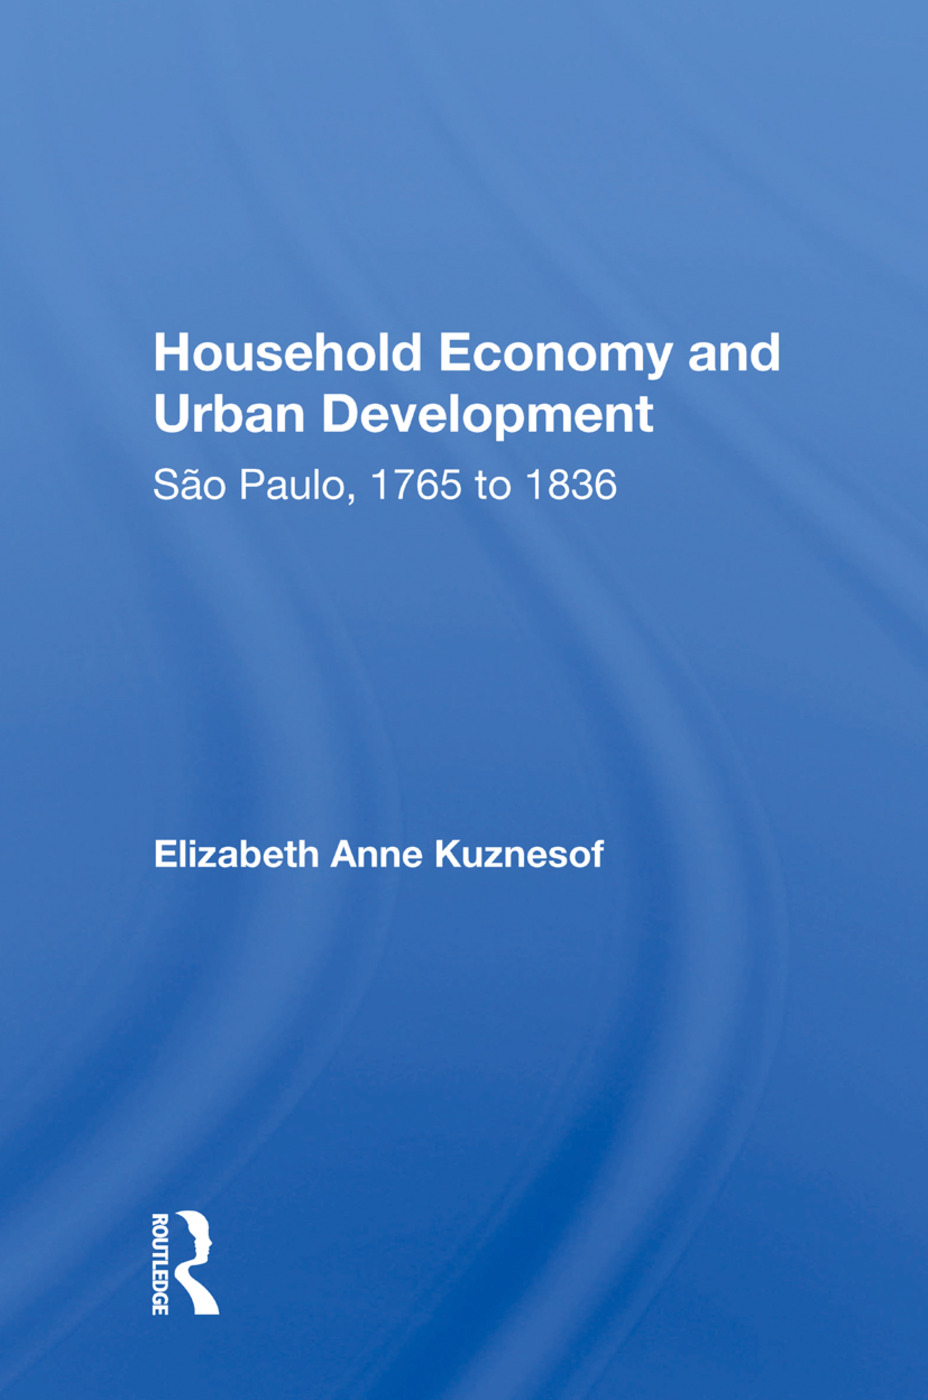 Household Economy and Modernization: A Comparative Perspective